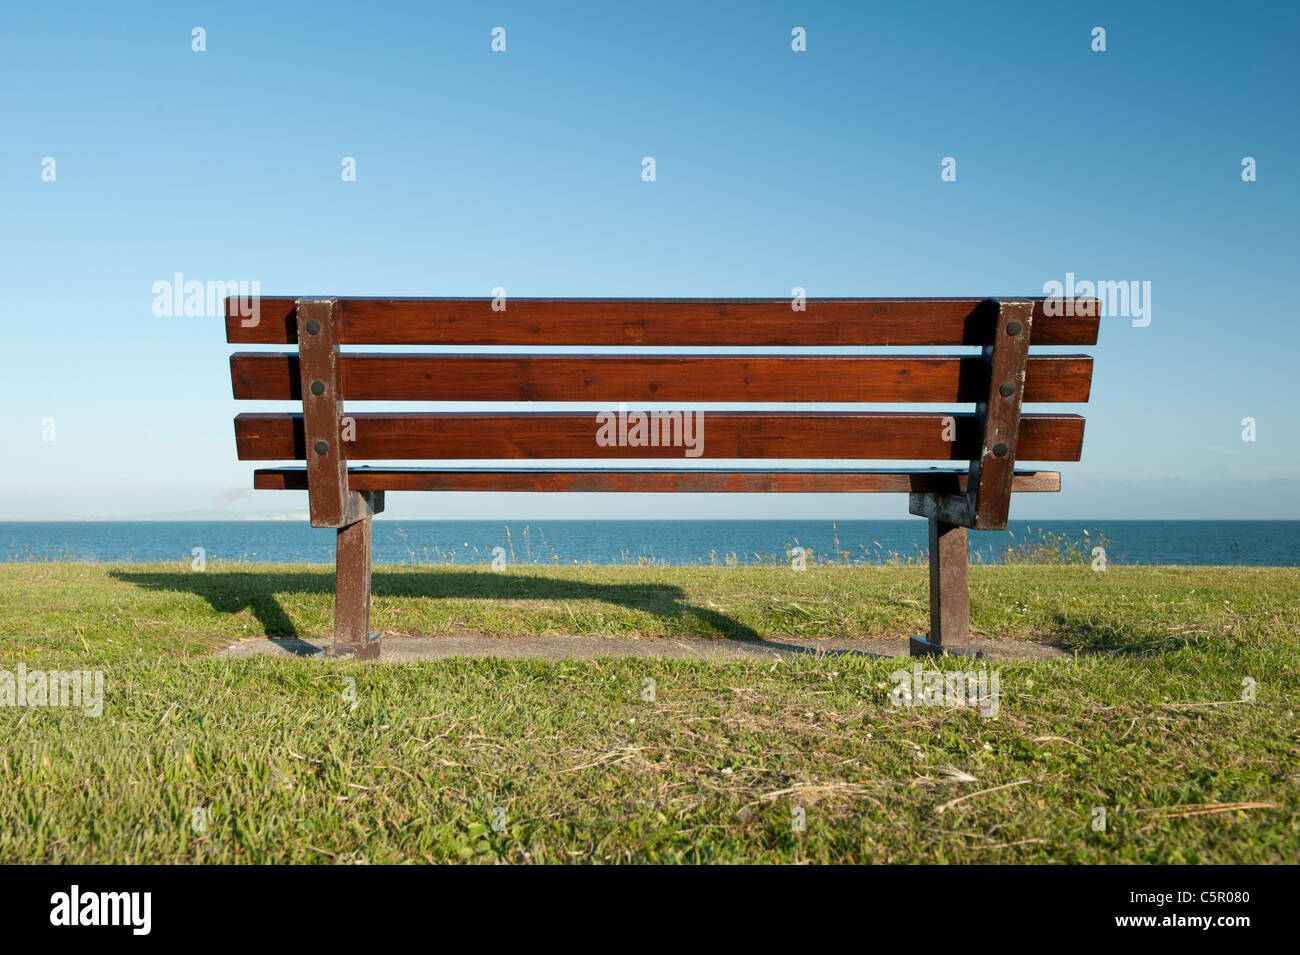 An empty public bench remains unoccupied overlooking a calm and still sea at Mudeford, Dorset. - Stock Image